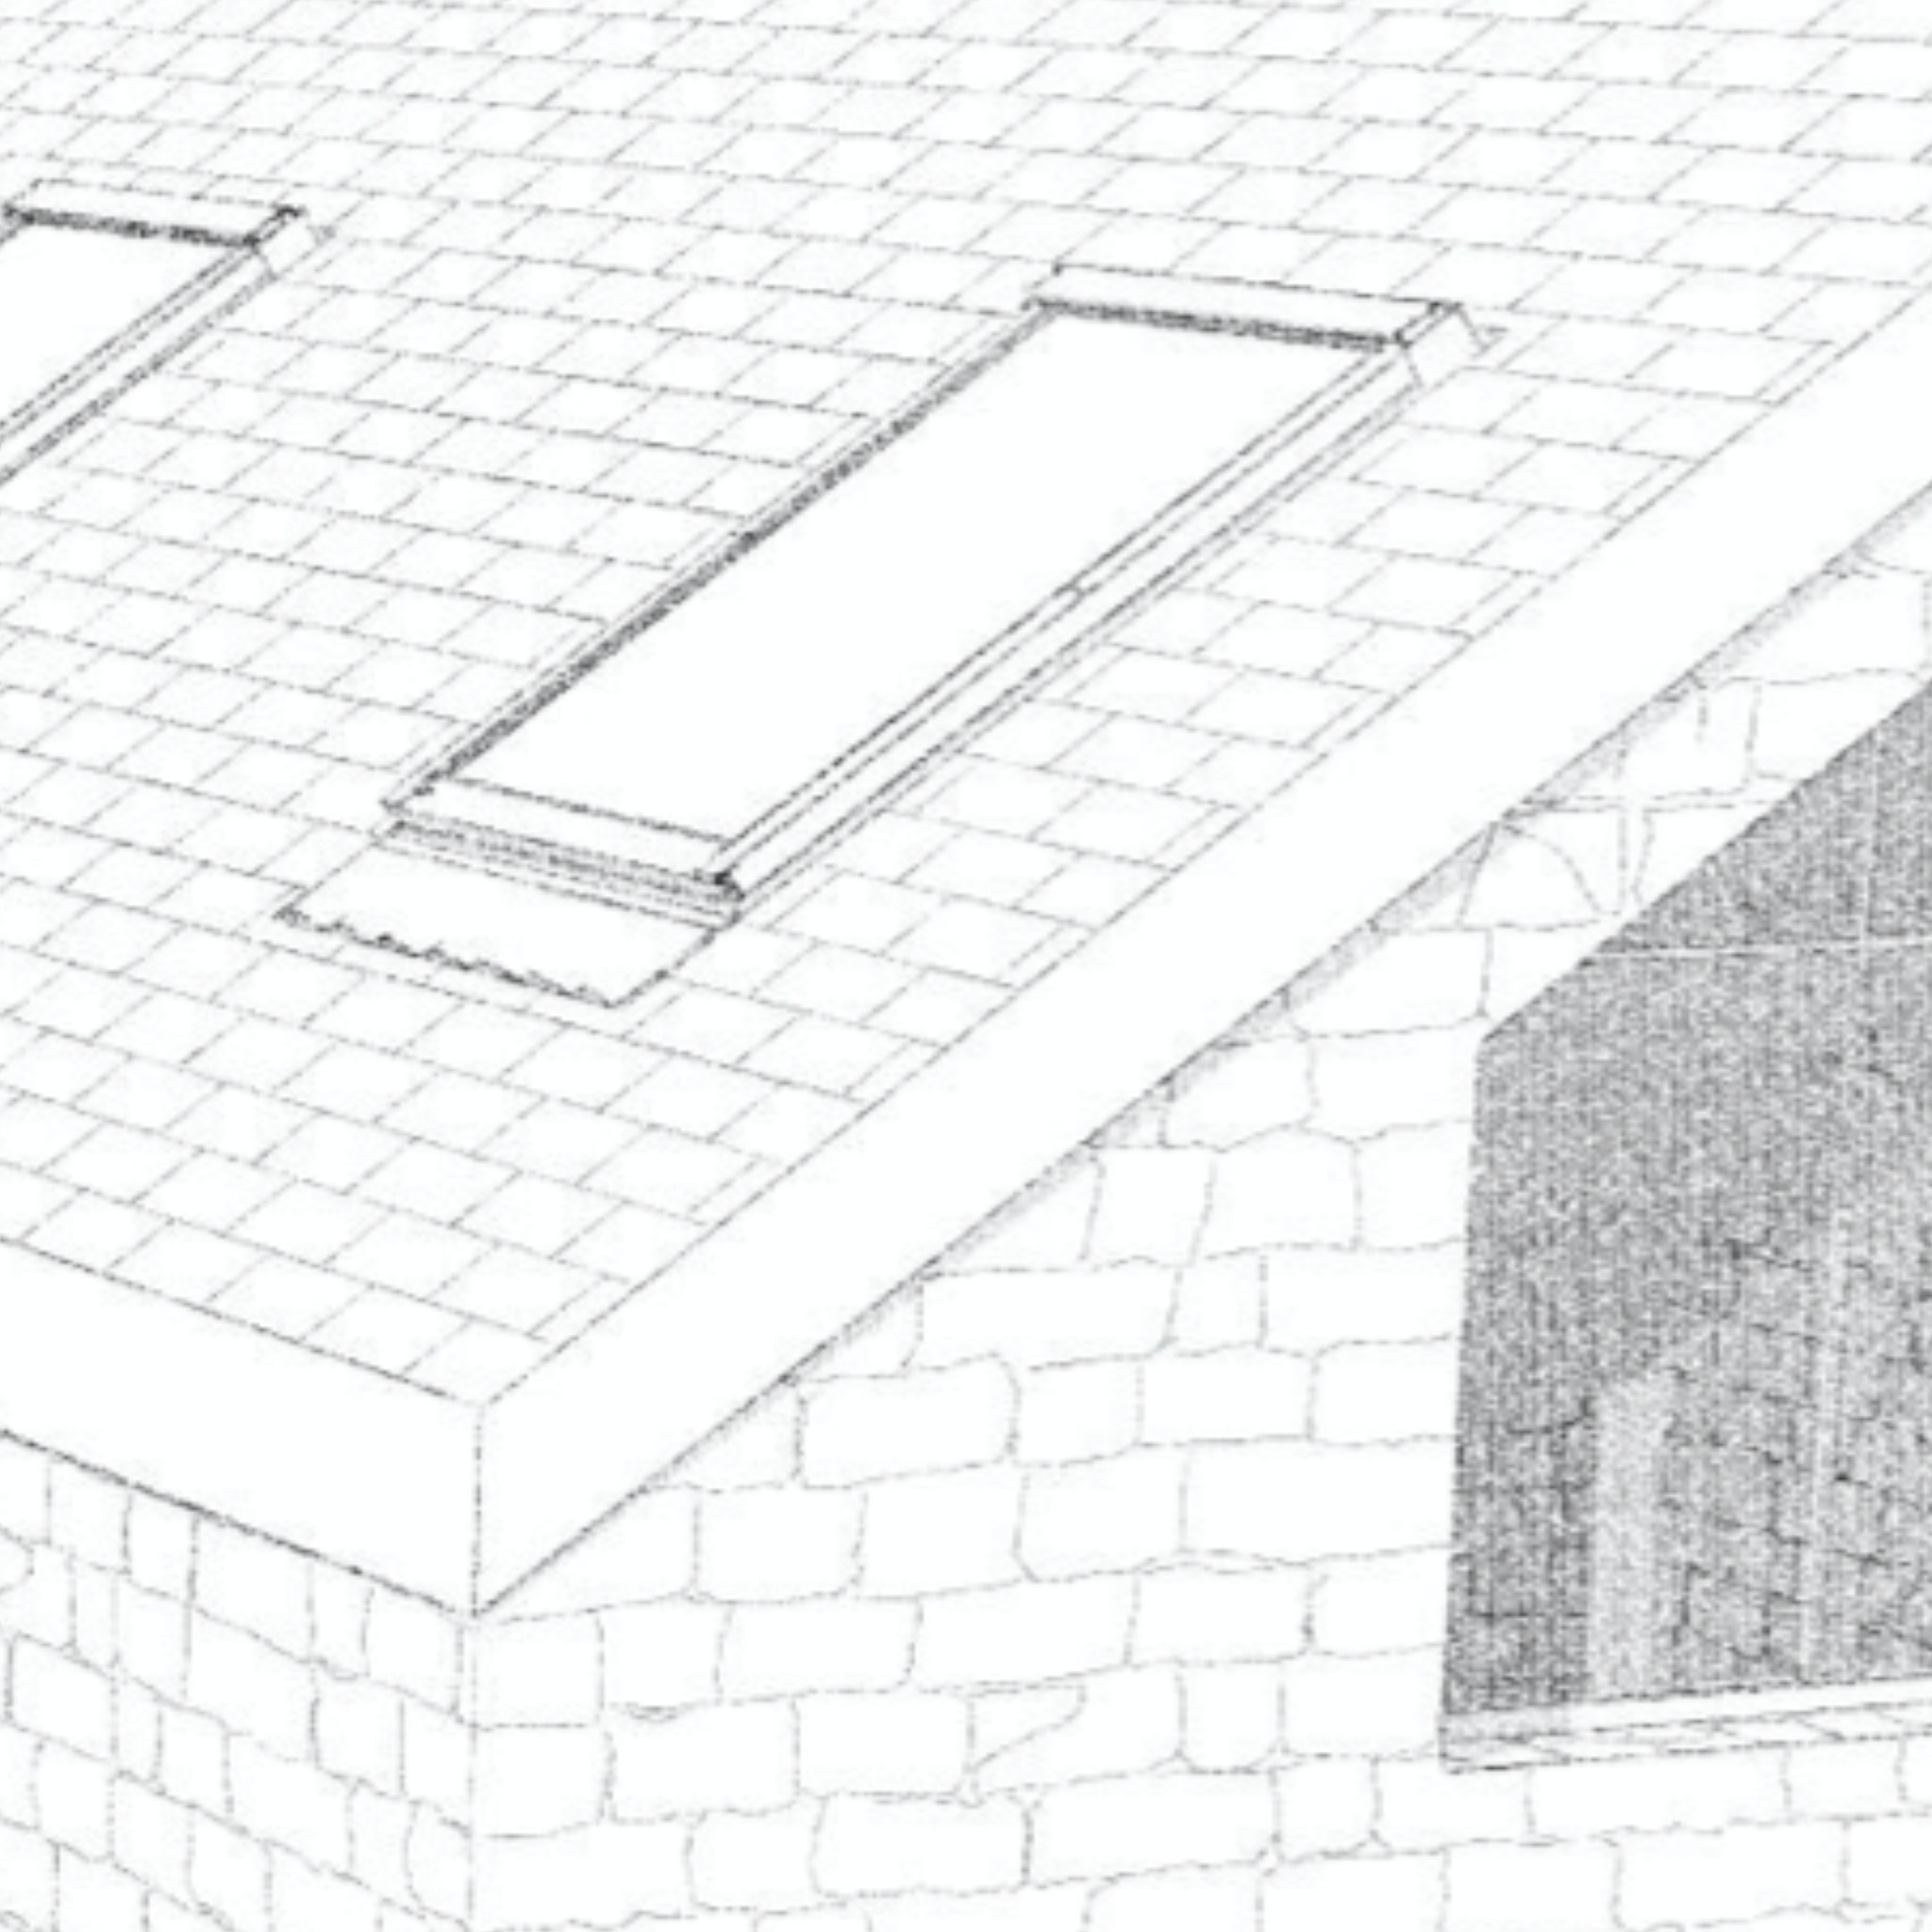 Newly developed JGA Guernsey granite material vectorial hatch (developed natively in ArchiCAD) drives display in elevation and section views - and also sketch rendered perspectives